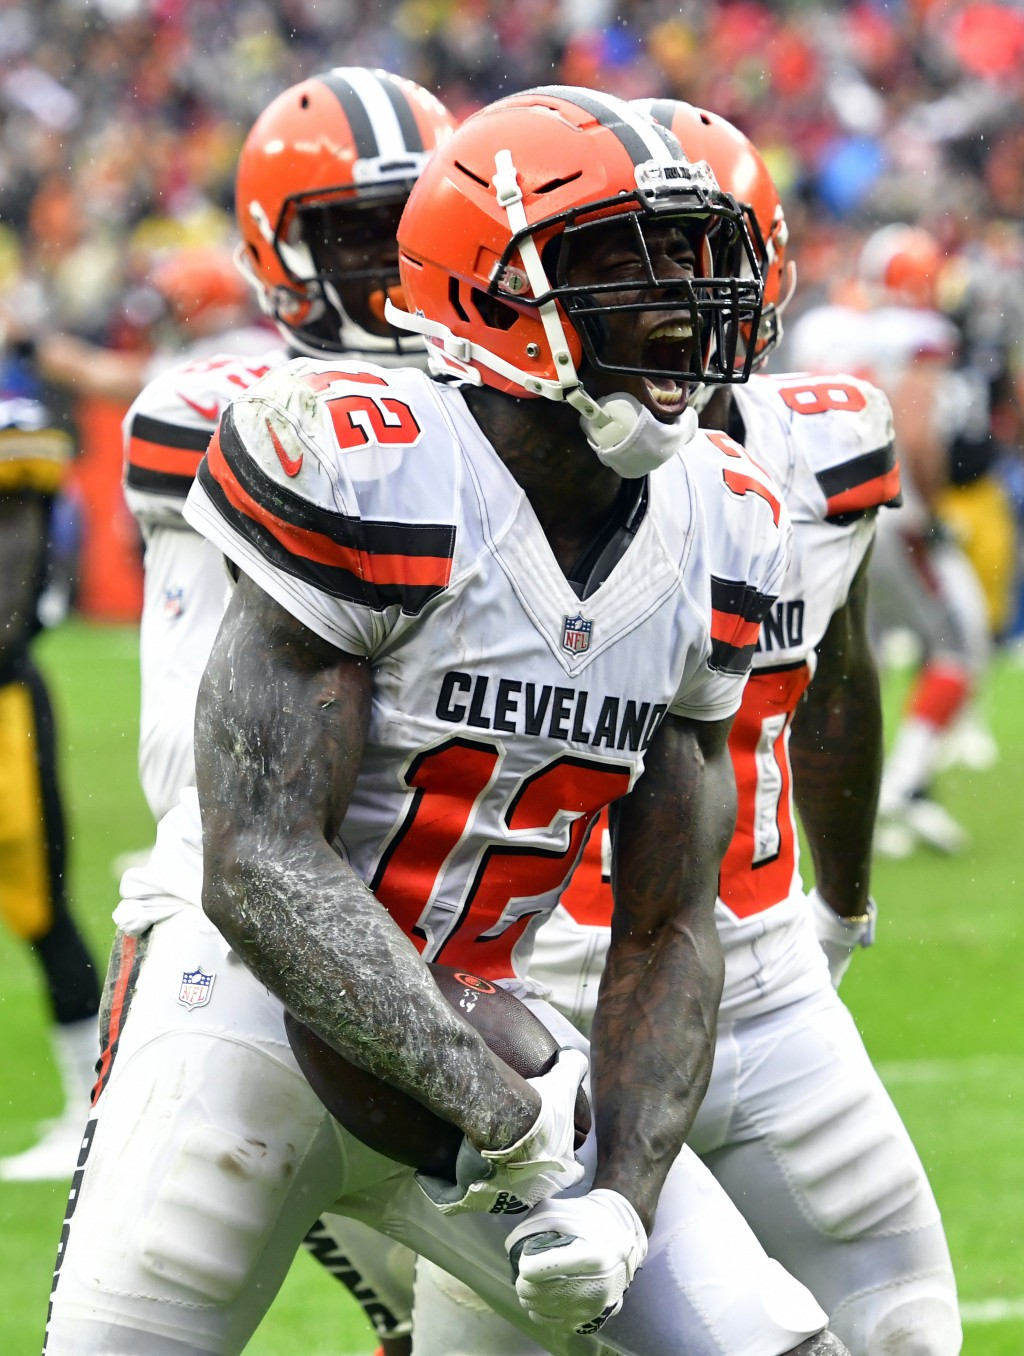 Cleveland Browns wide receiver Josh Gordon (12) reacts after catching a 17-yard touchdown pass during the second half of an NFL football game against